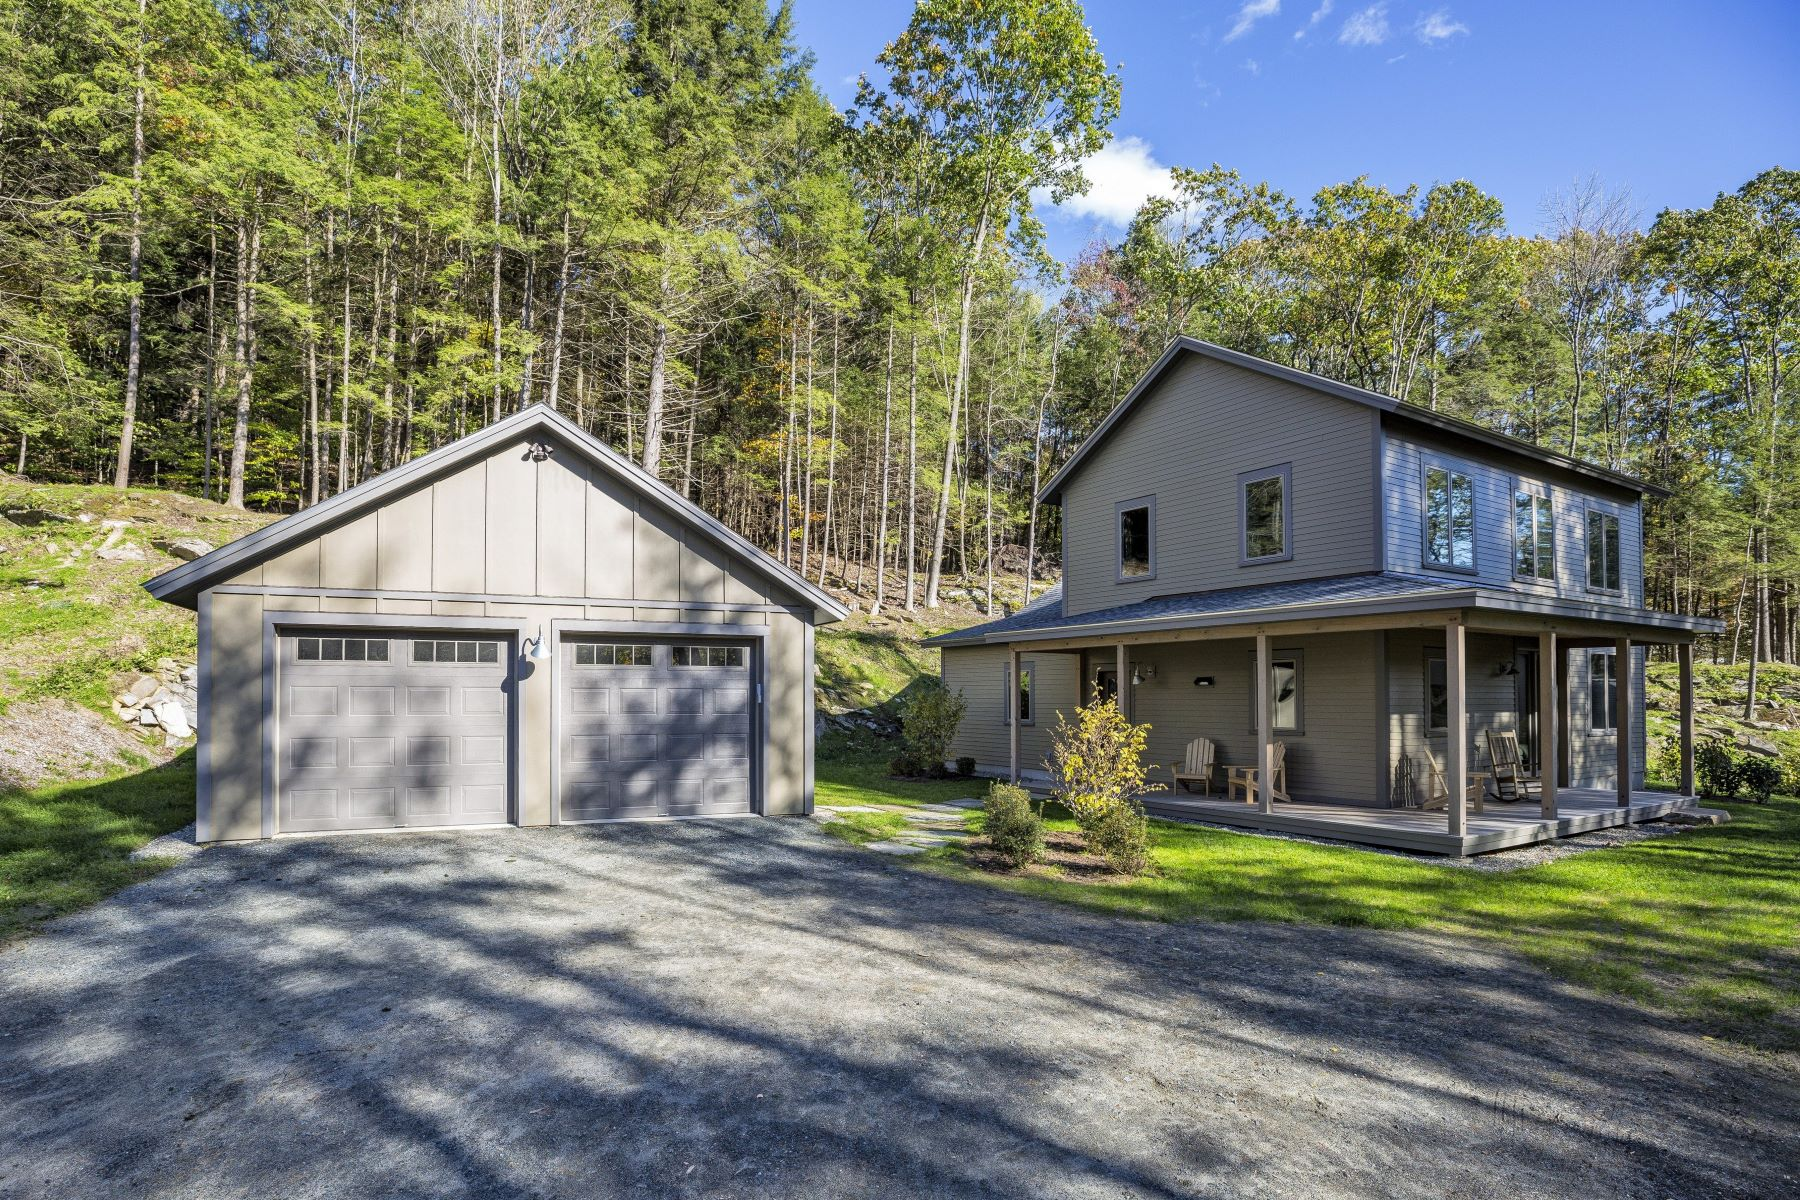 Single Family Homes for Sale at Three Bedroom Farmhouse in Quechee Community 1013 Willard Rd 5206 Hartford, Vermont 05059 United States